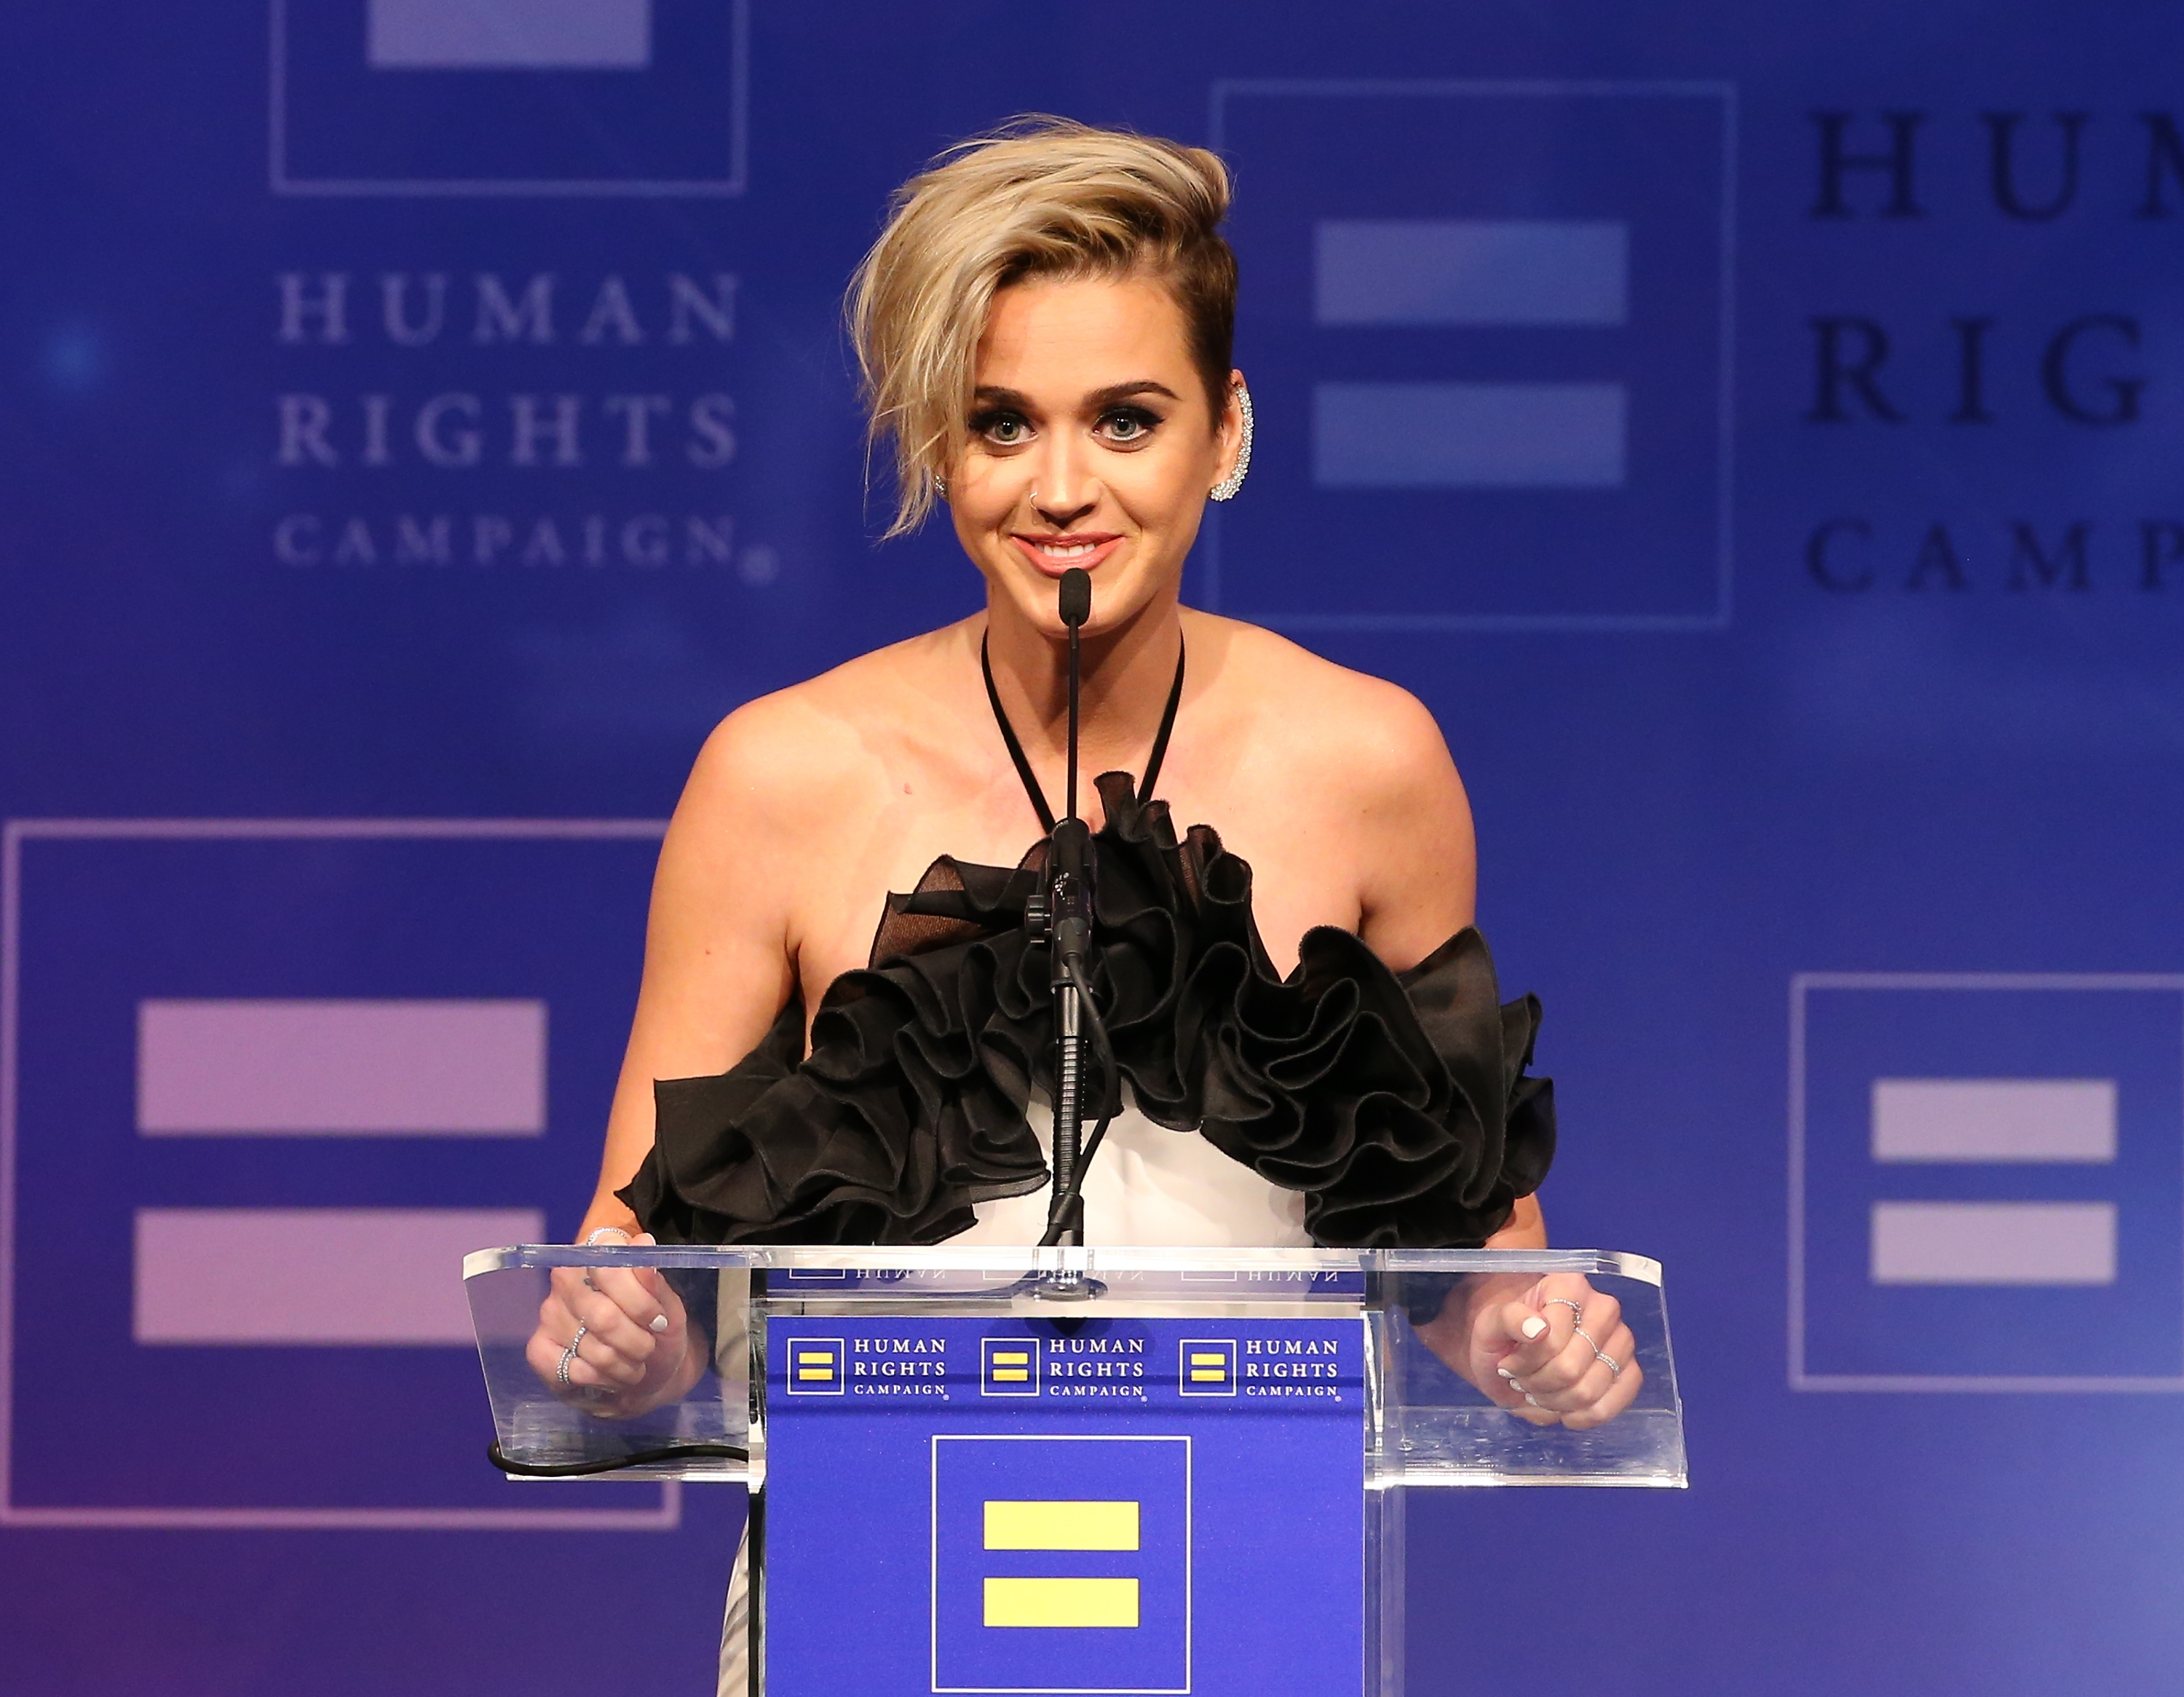 Katy Perry gave a beautifully honest speech about becoming an LGBTQ ally at the Human Rights Campaign Gala